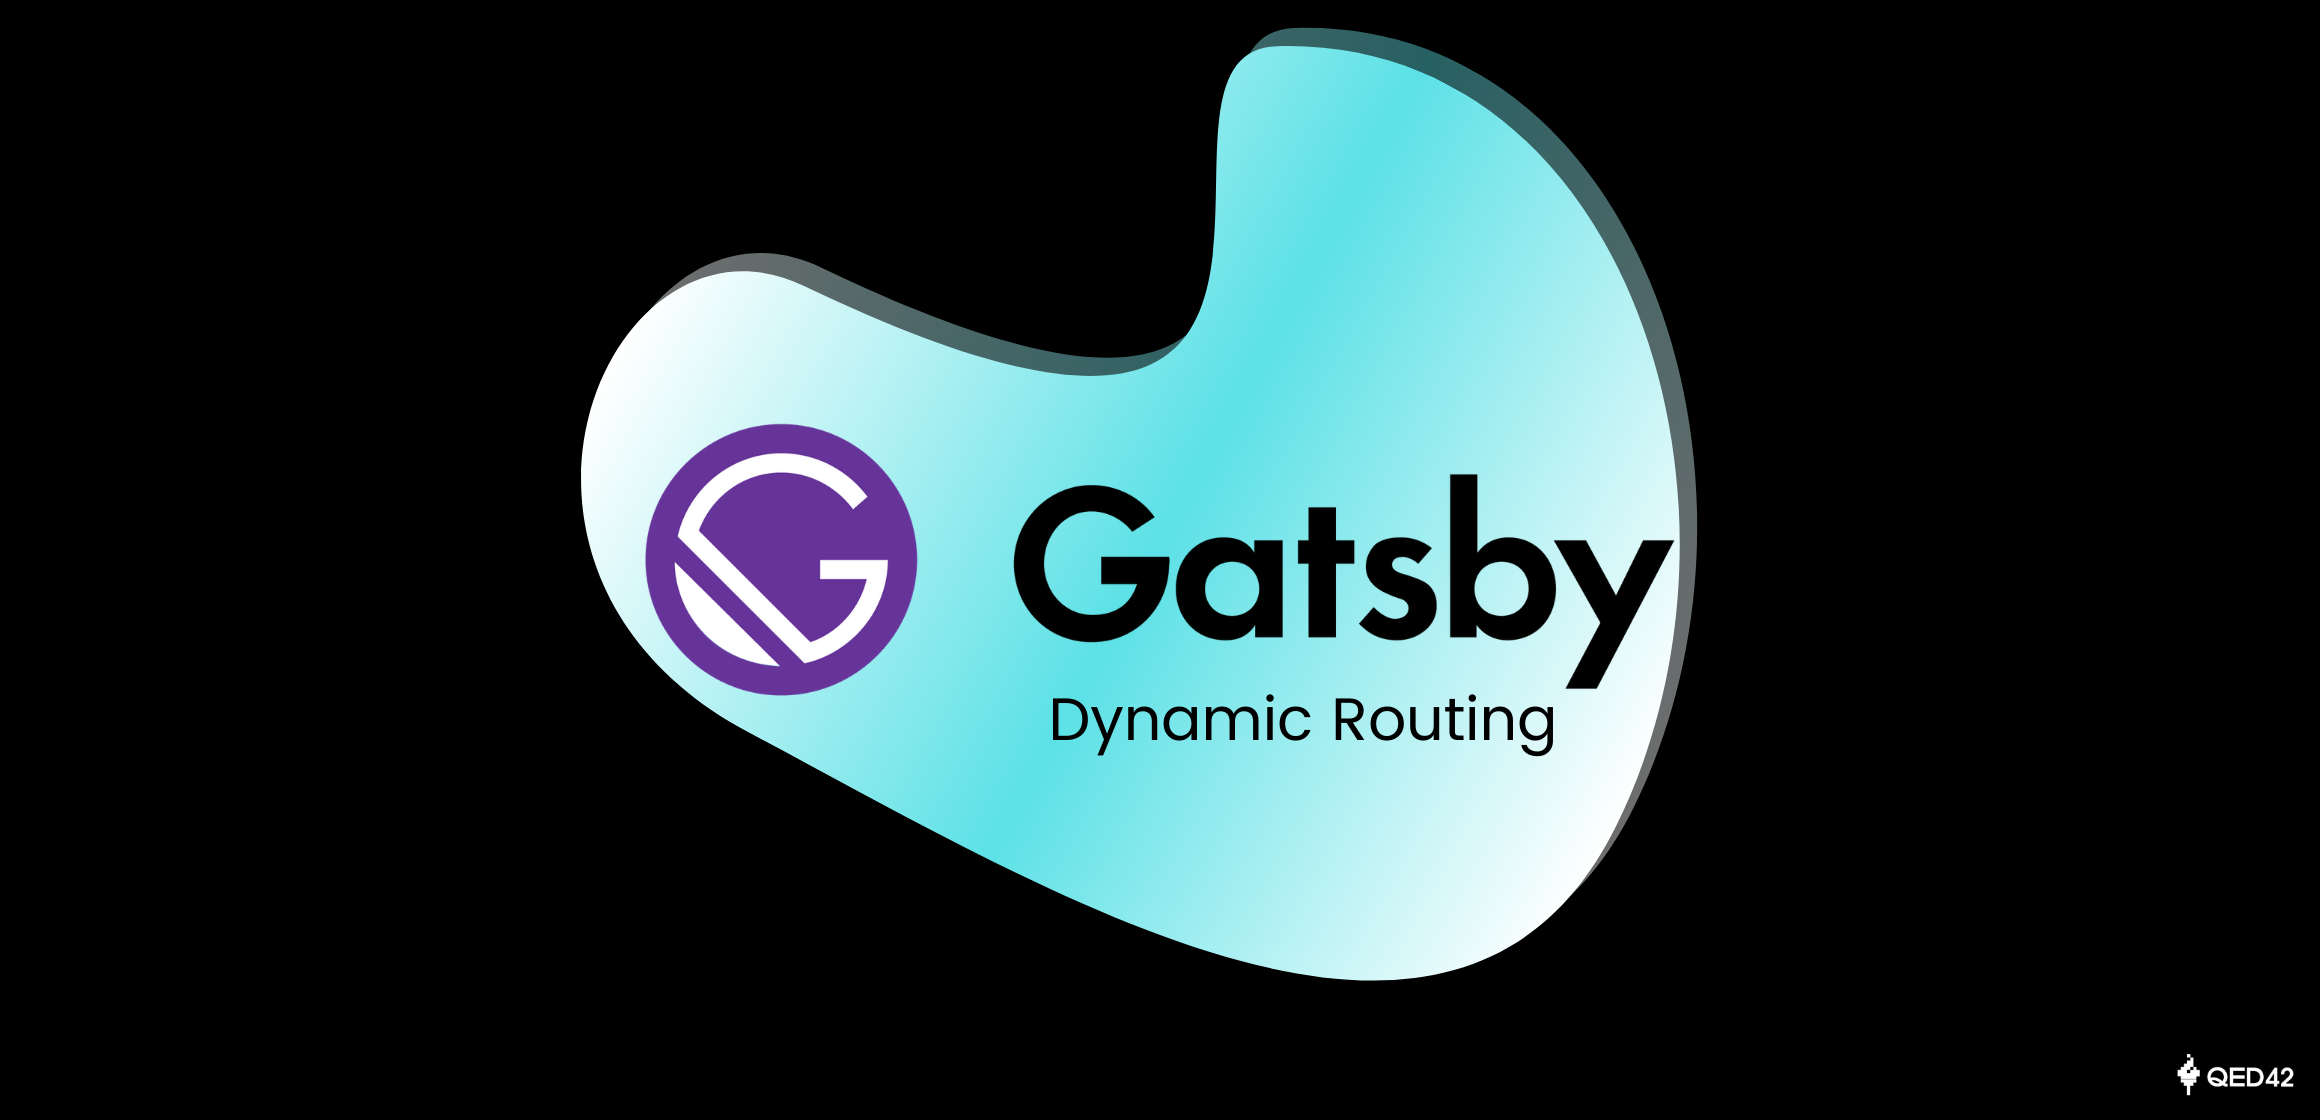 Dynamic Routing in Gatsby